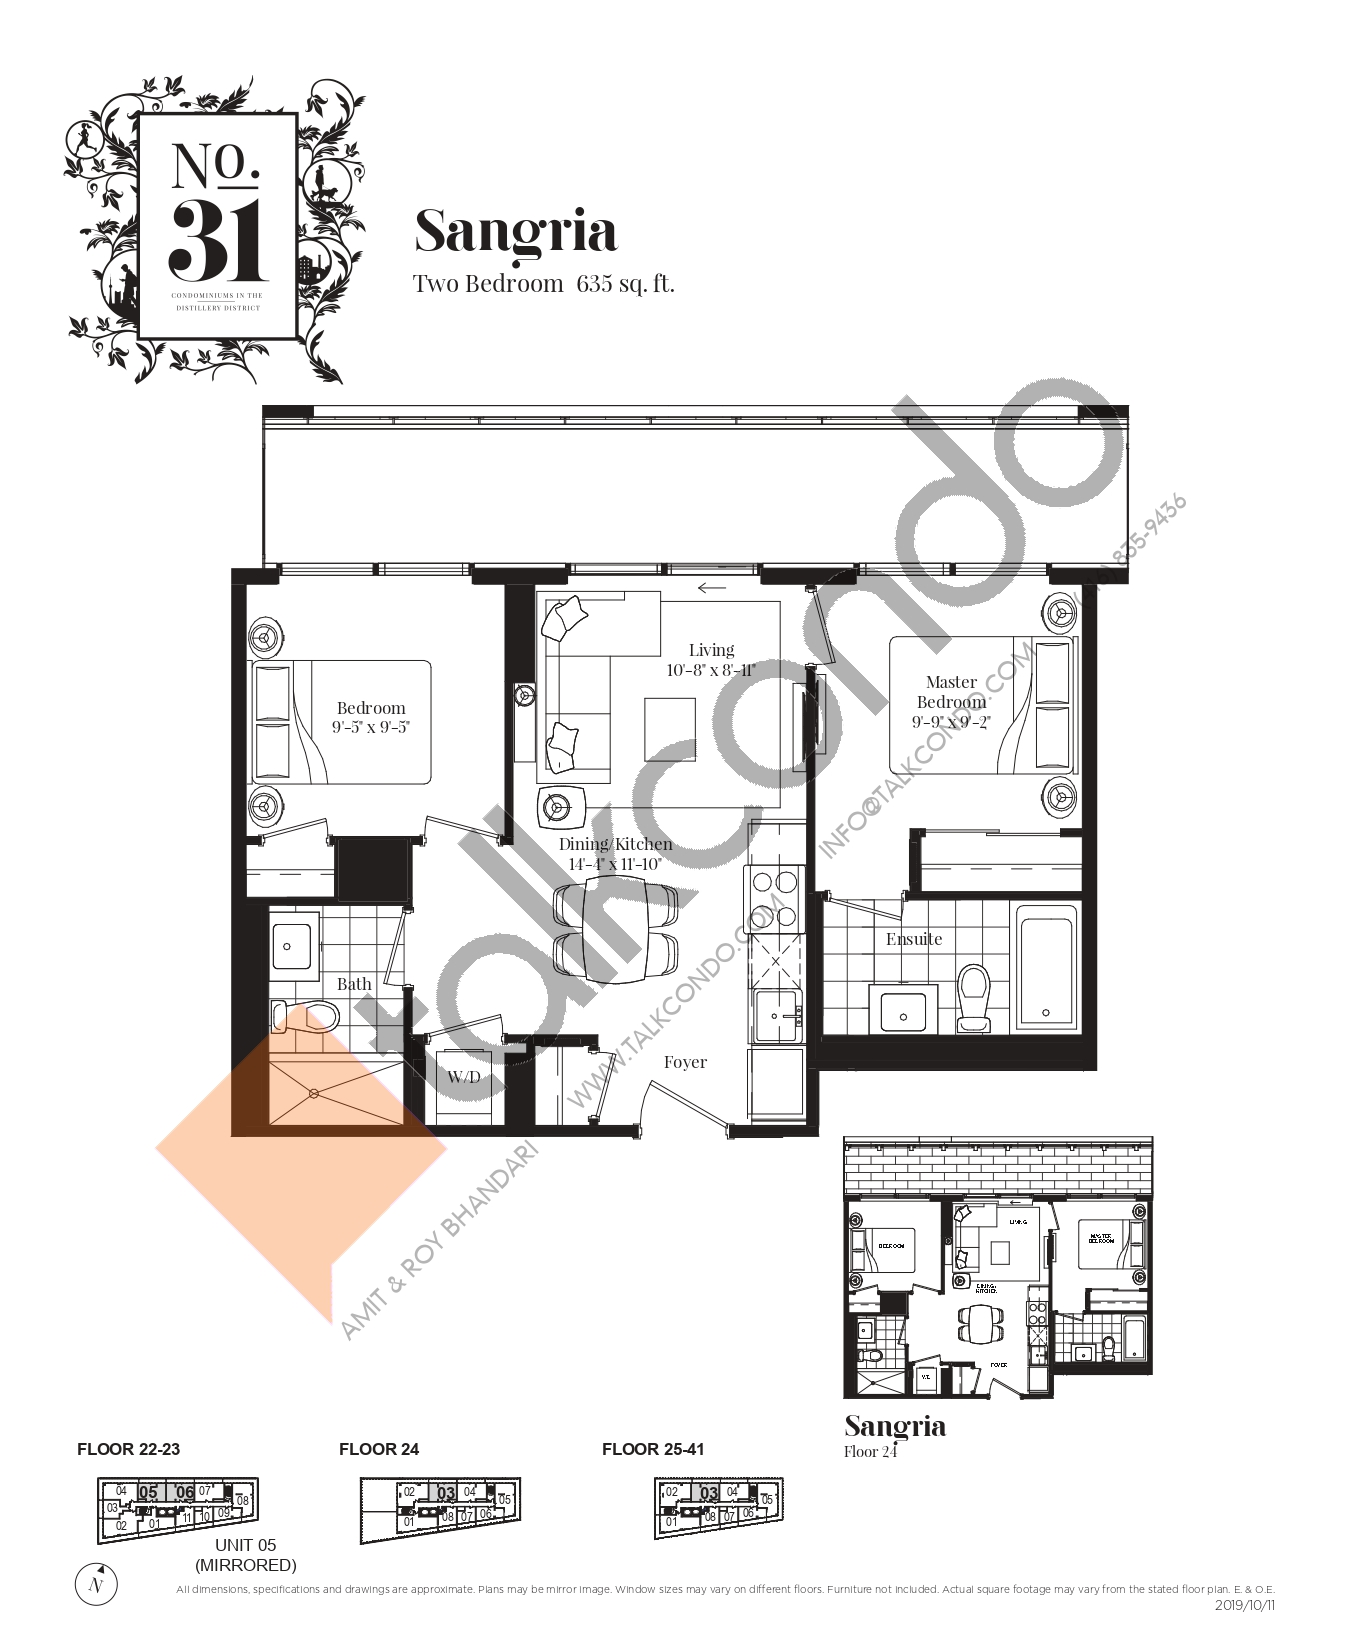 Sangria Floor Plan at No. 31 Condos - 635 sq.ft